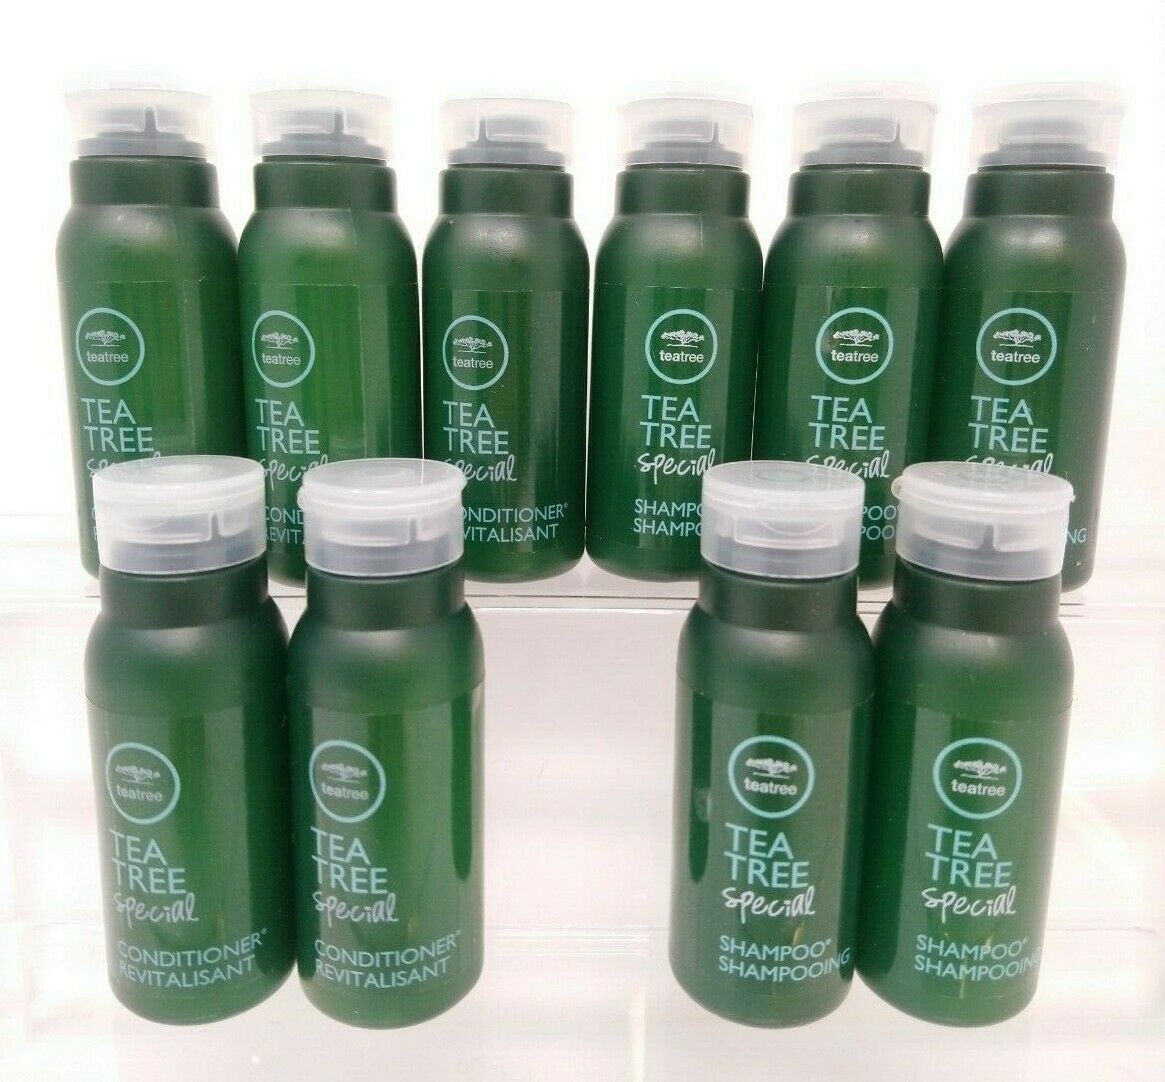 Paul Mitchell TEA TREE 1 oz Special Shampoo and Conditioner Travel Size - $16.97 - $28.97